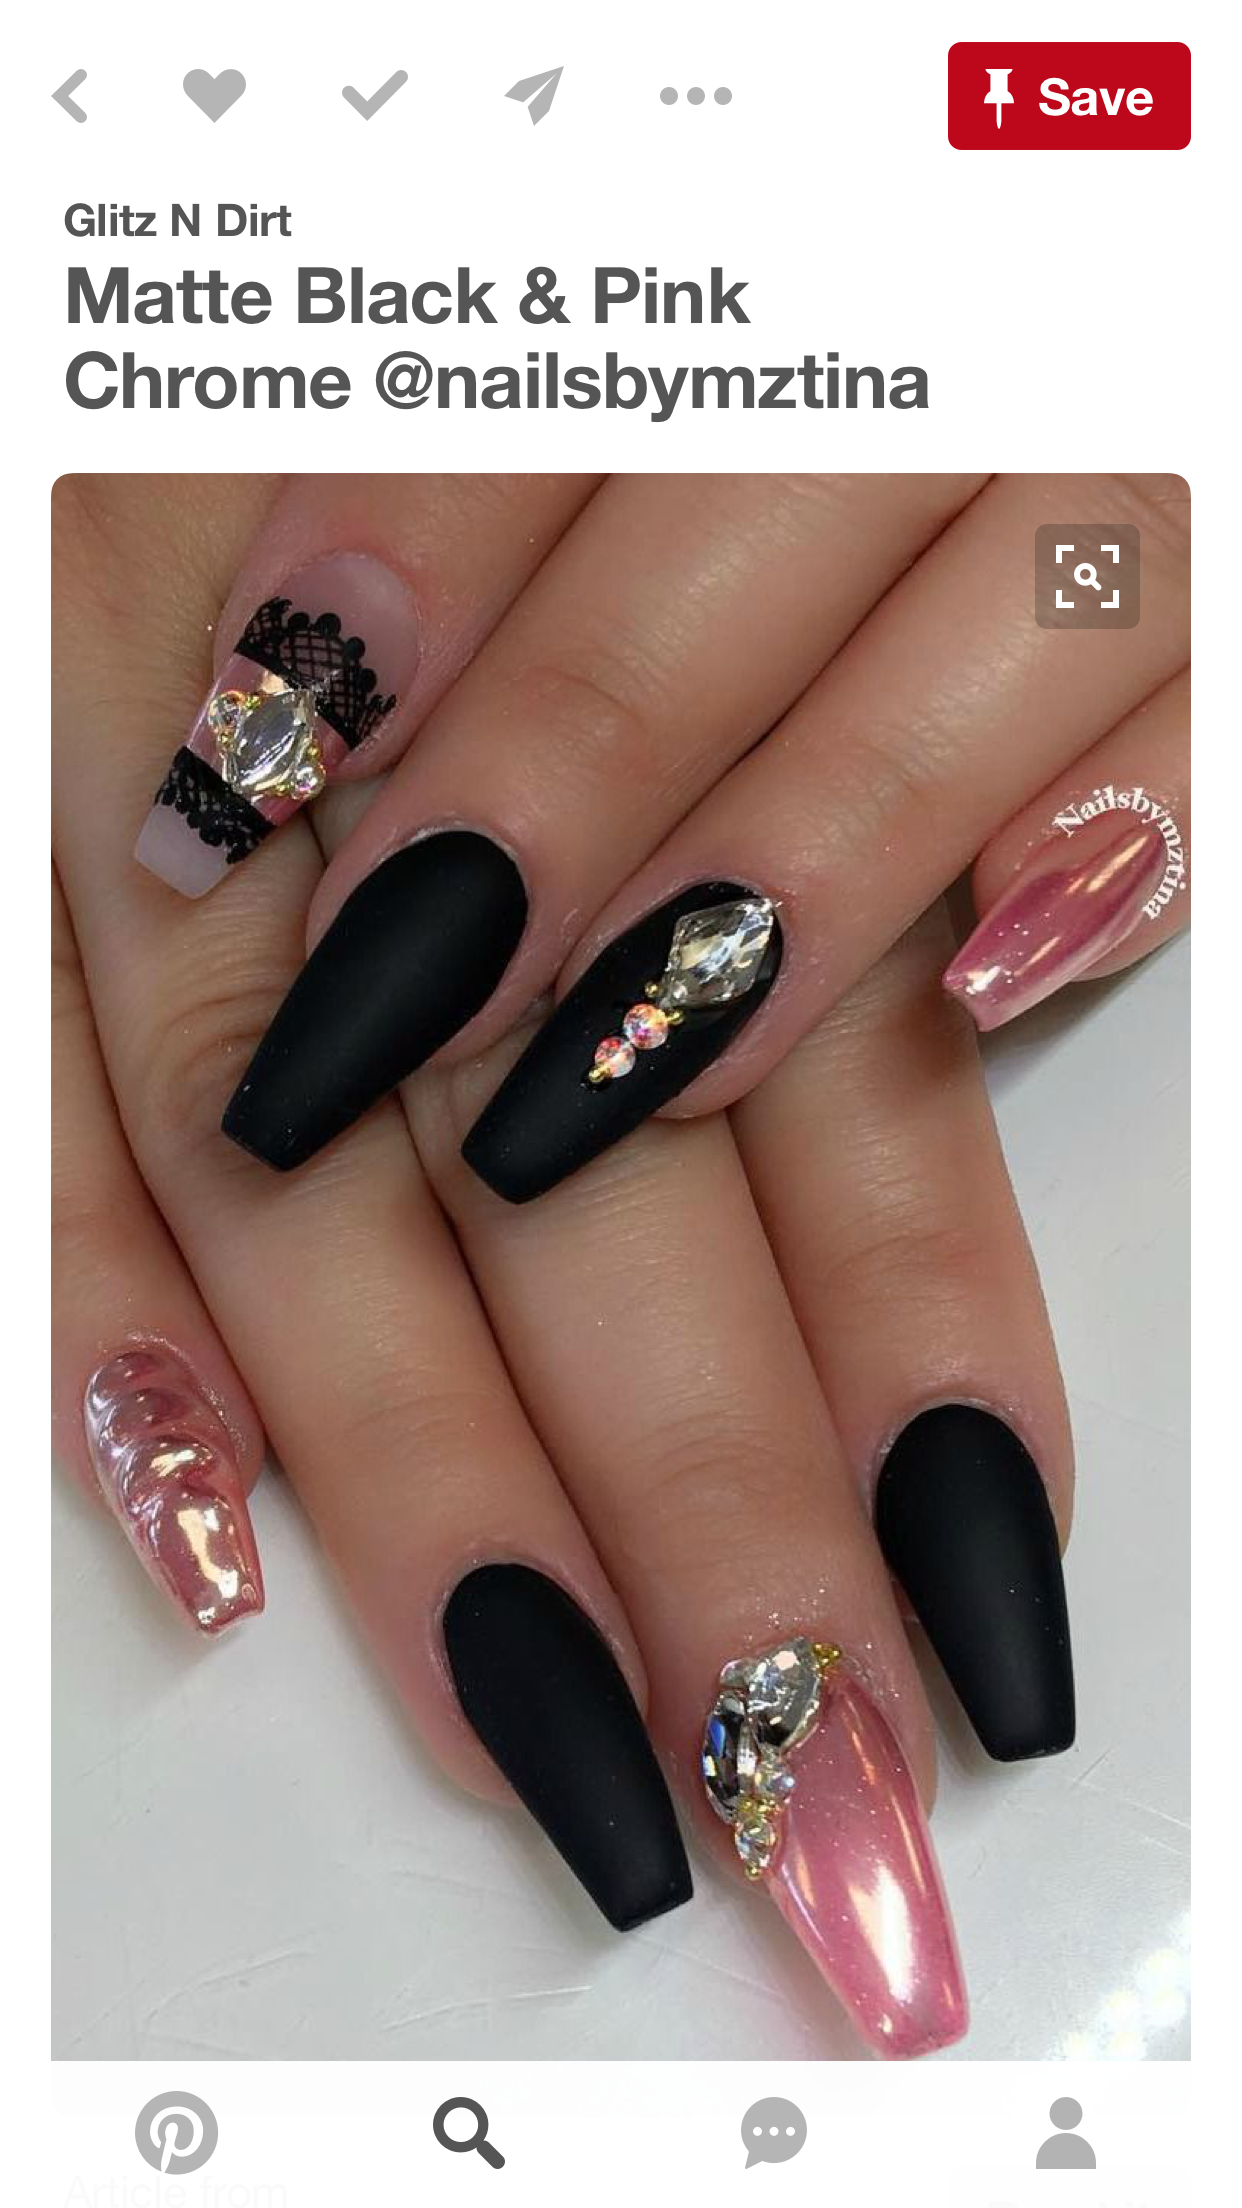 Pin by Melanie Purvis on Spring nails | Pinterest | Creative nails ...